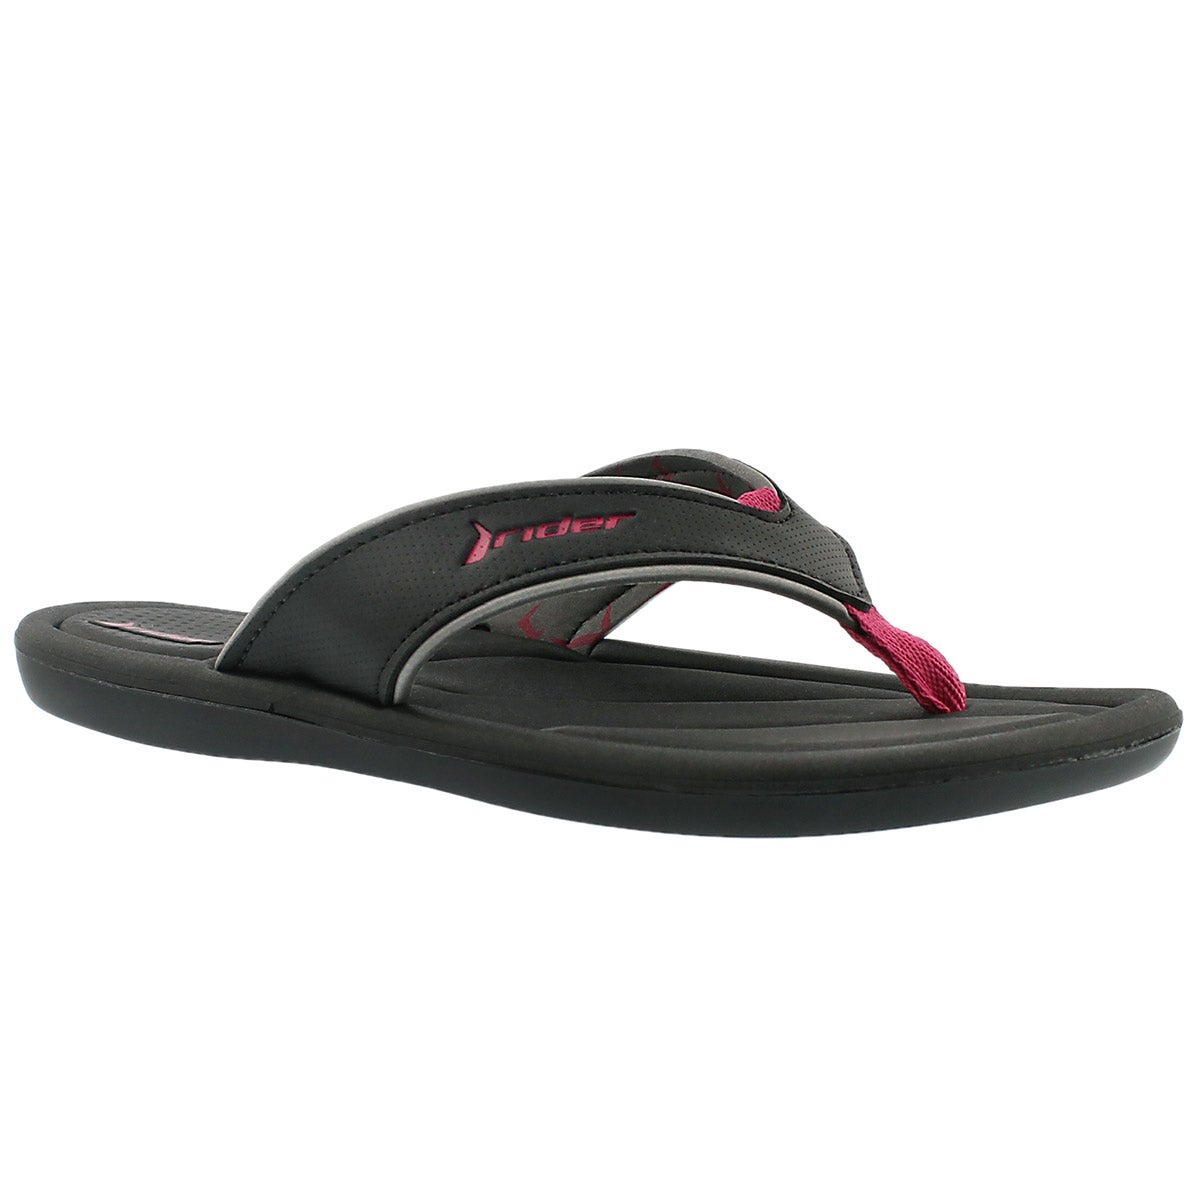 Lds Cloud III black flip flop sandal